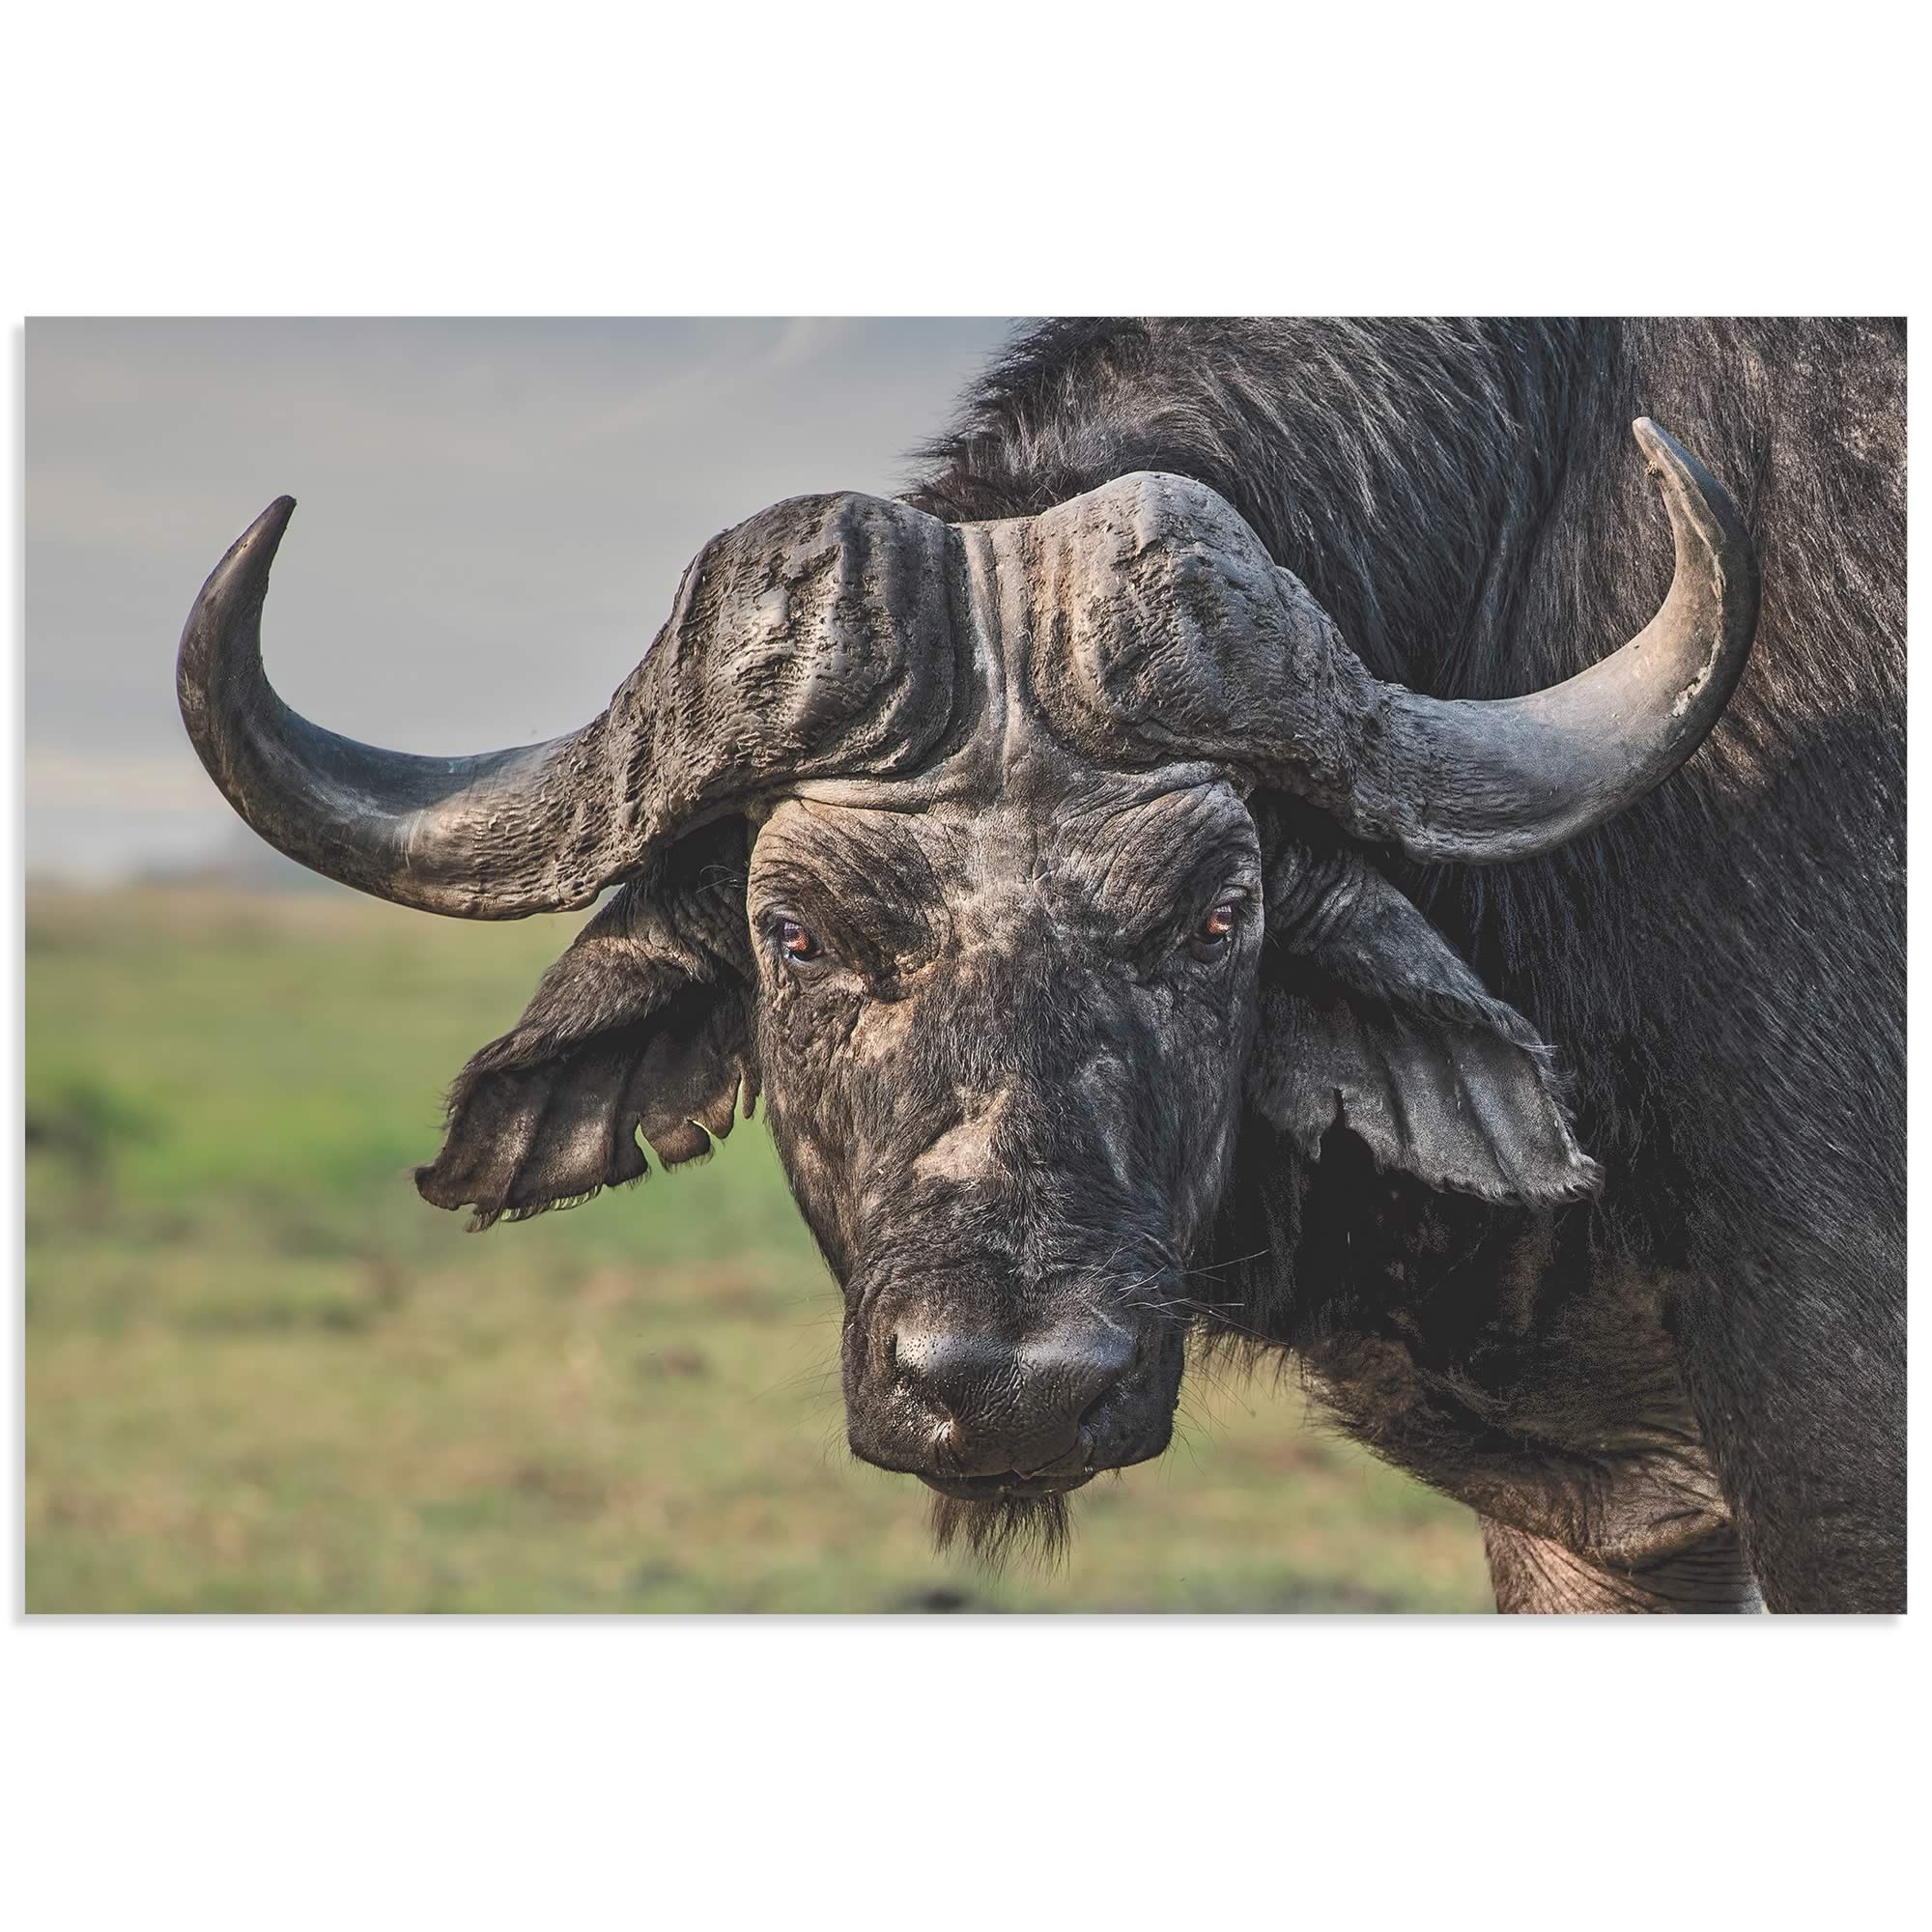 The Old Fighter Buffalo by Piet Flour - Buffalo Wall Art on Metal or Acrylic